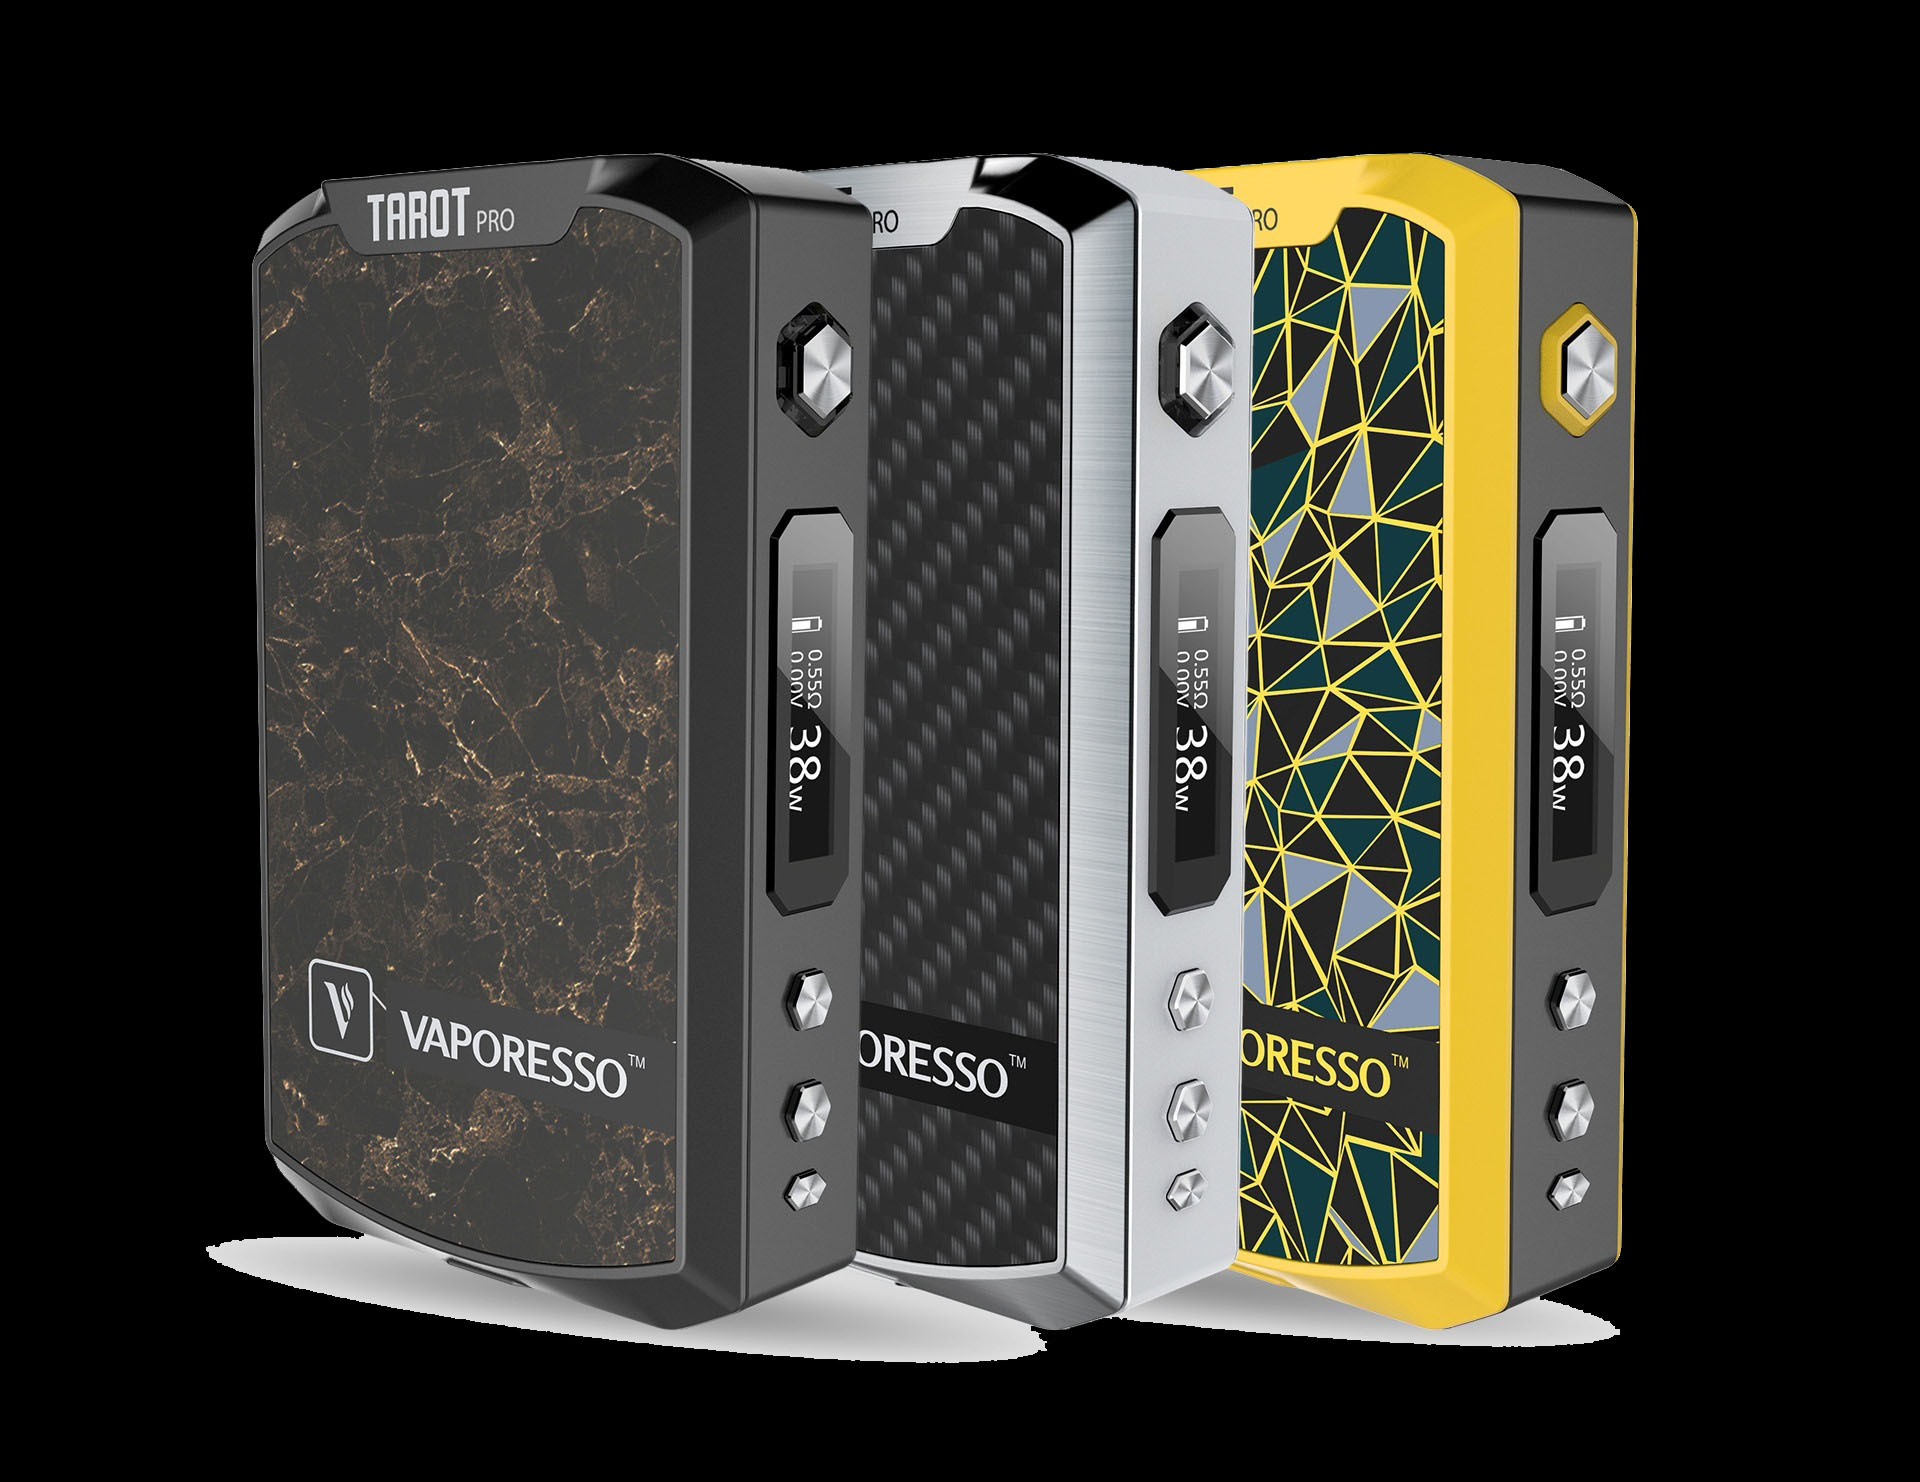 Vaporesso Tarot Pro Mod in kansas city, buy e mod in kansas city, vape shop in kansas city